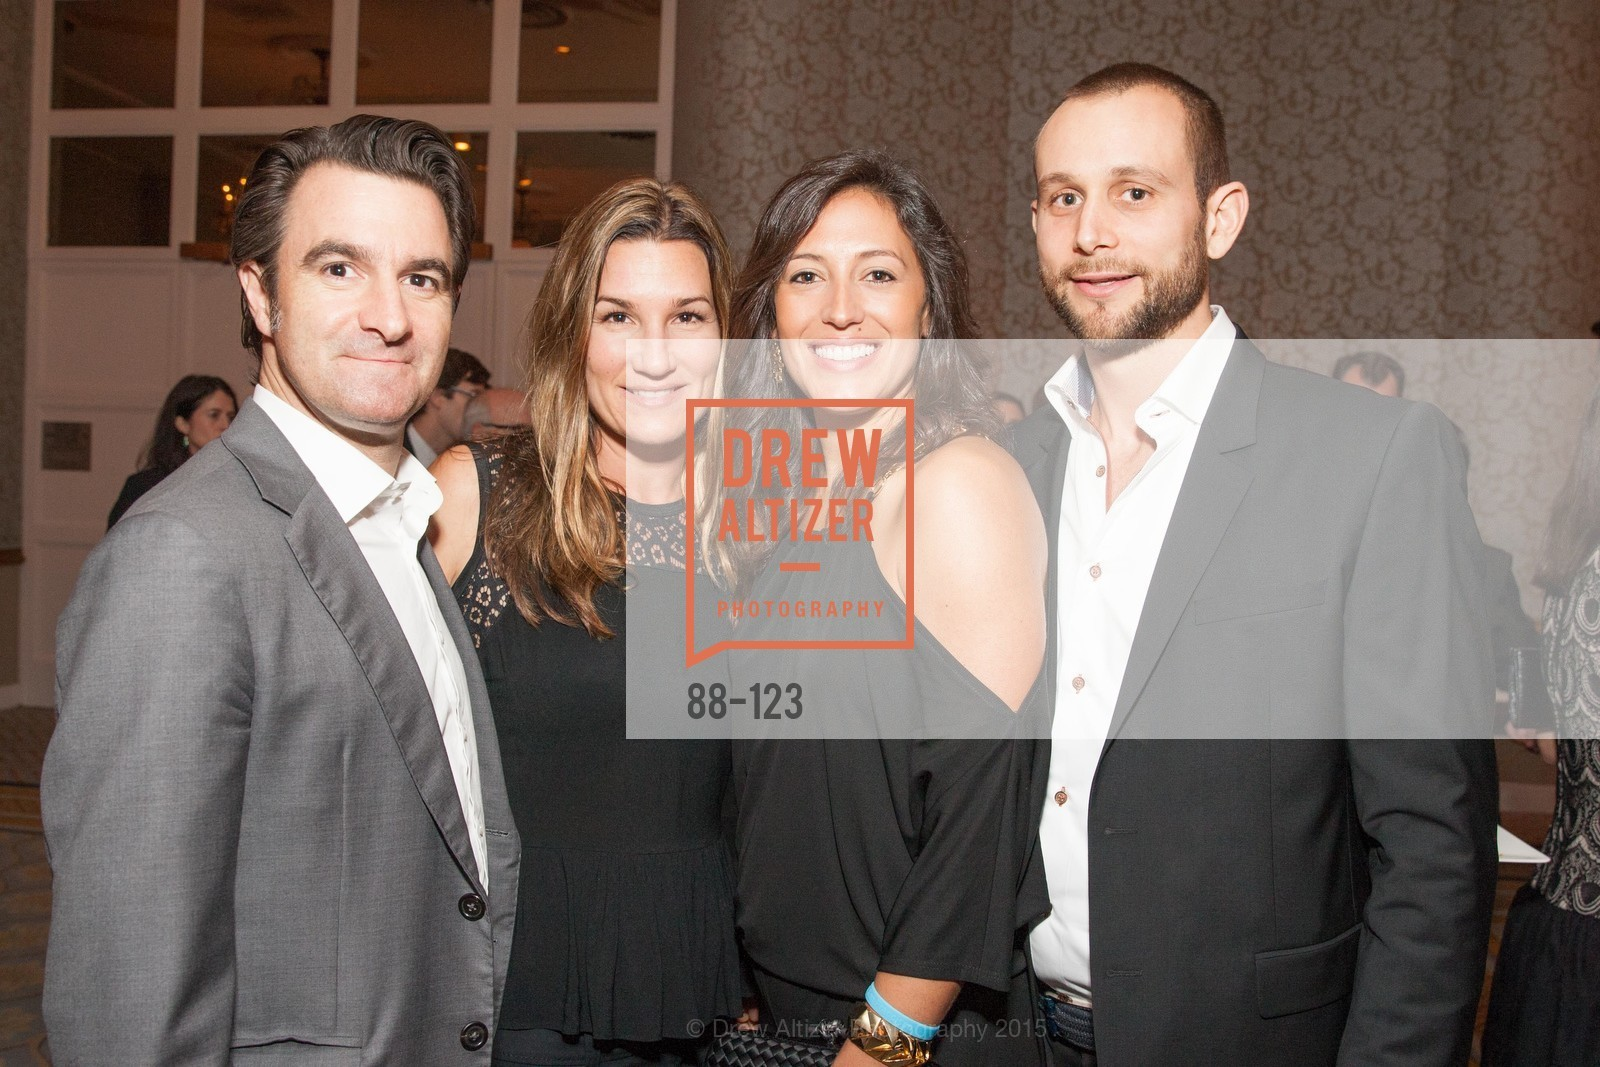 Quincy Smith, Kat Hontes, Kelly Flannery, Tim Kovak, 2015 Boys and Girls Club Annual Gala, The Fairmont San Francisco. 950 Mason St, May 20th, 2015,Drew Altizer, Drew Altizer Photography, full-service agency, private events, San Francisco photographer, photographer california